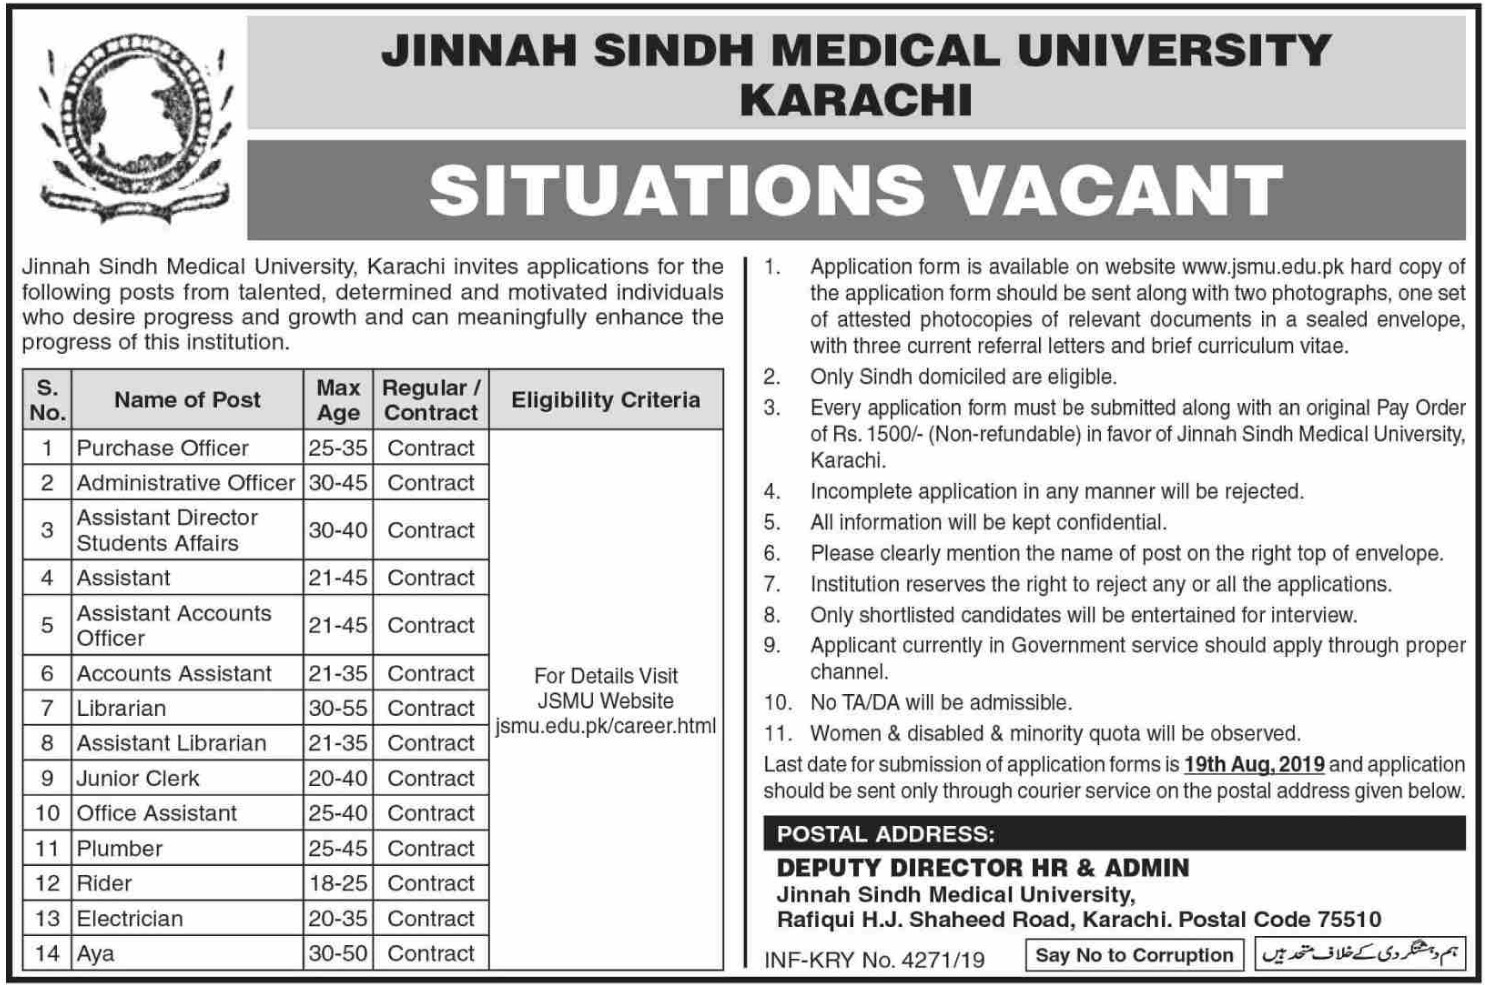 Jinnah Sindh Medical University JSMU Karachi Jobs 2019 Download Application Form